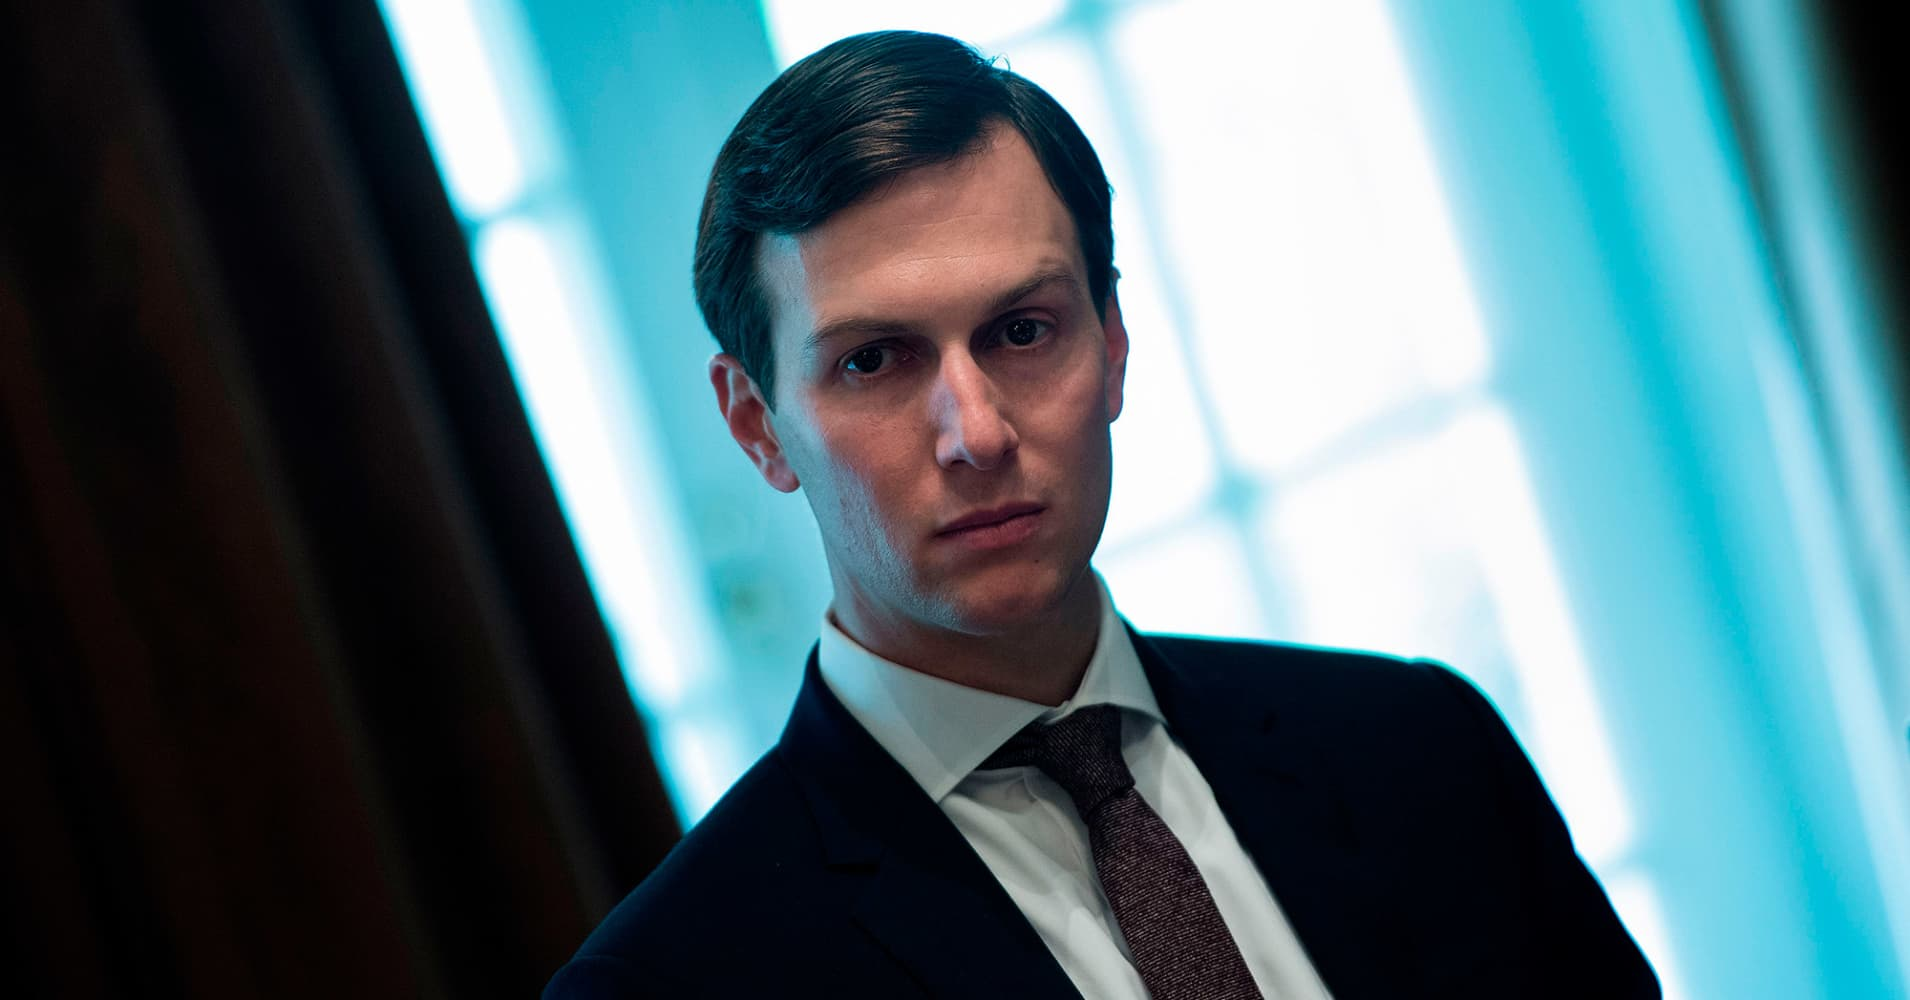 Jared Kushner's legal team is seeking a crisis PR firm: Report